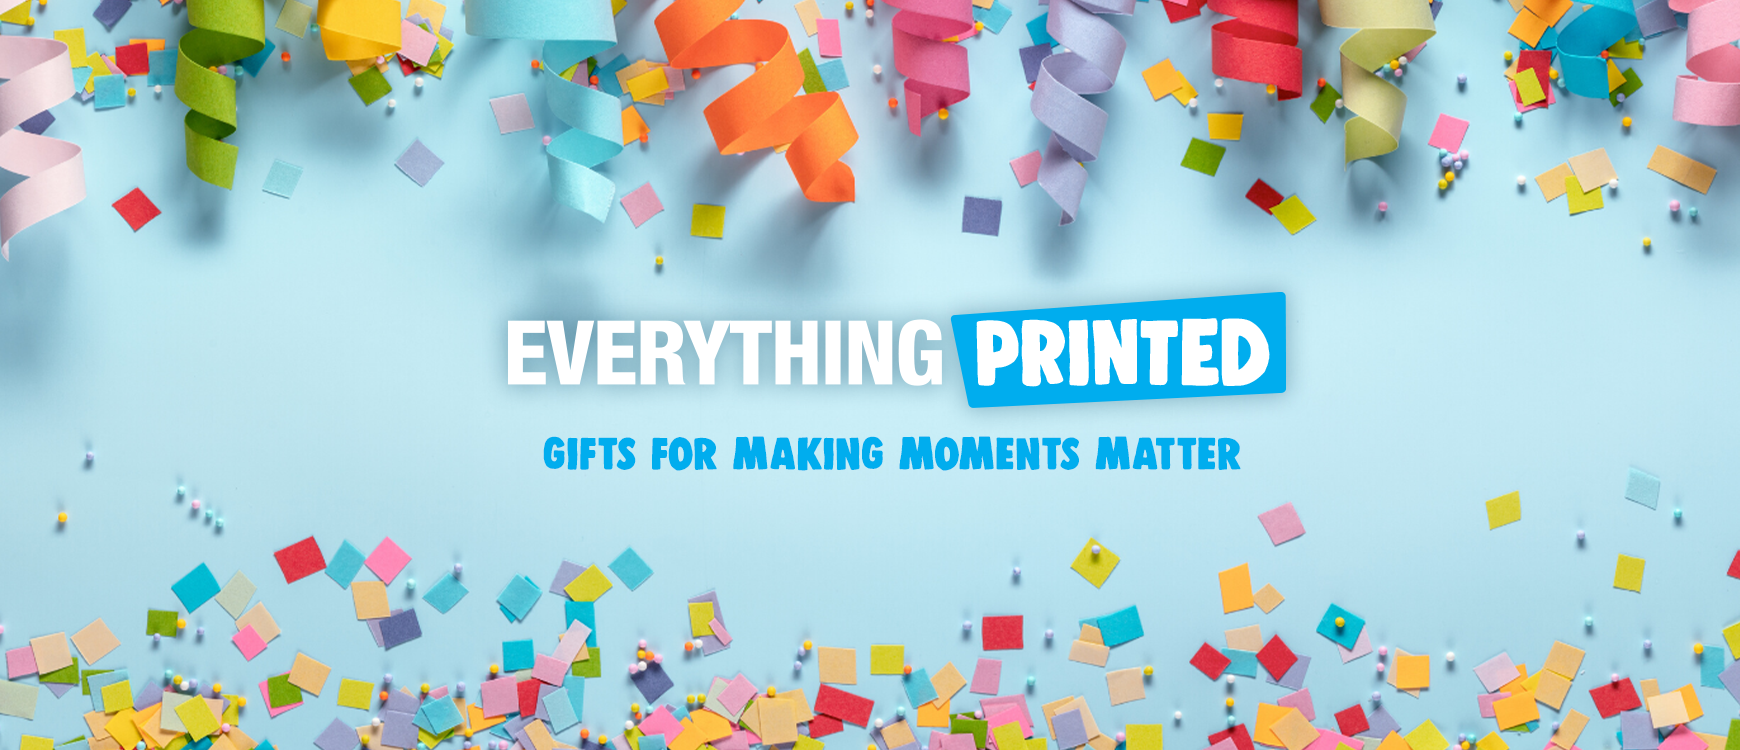 EverythingPrinted- gifts for making moments matter